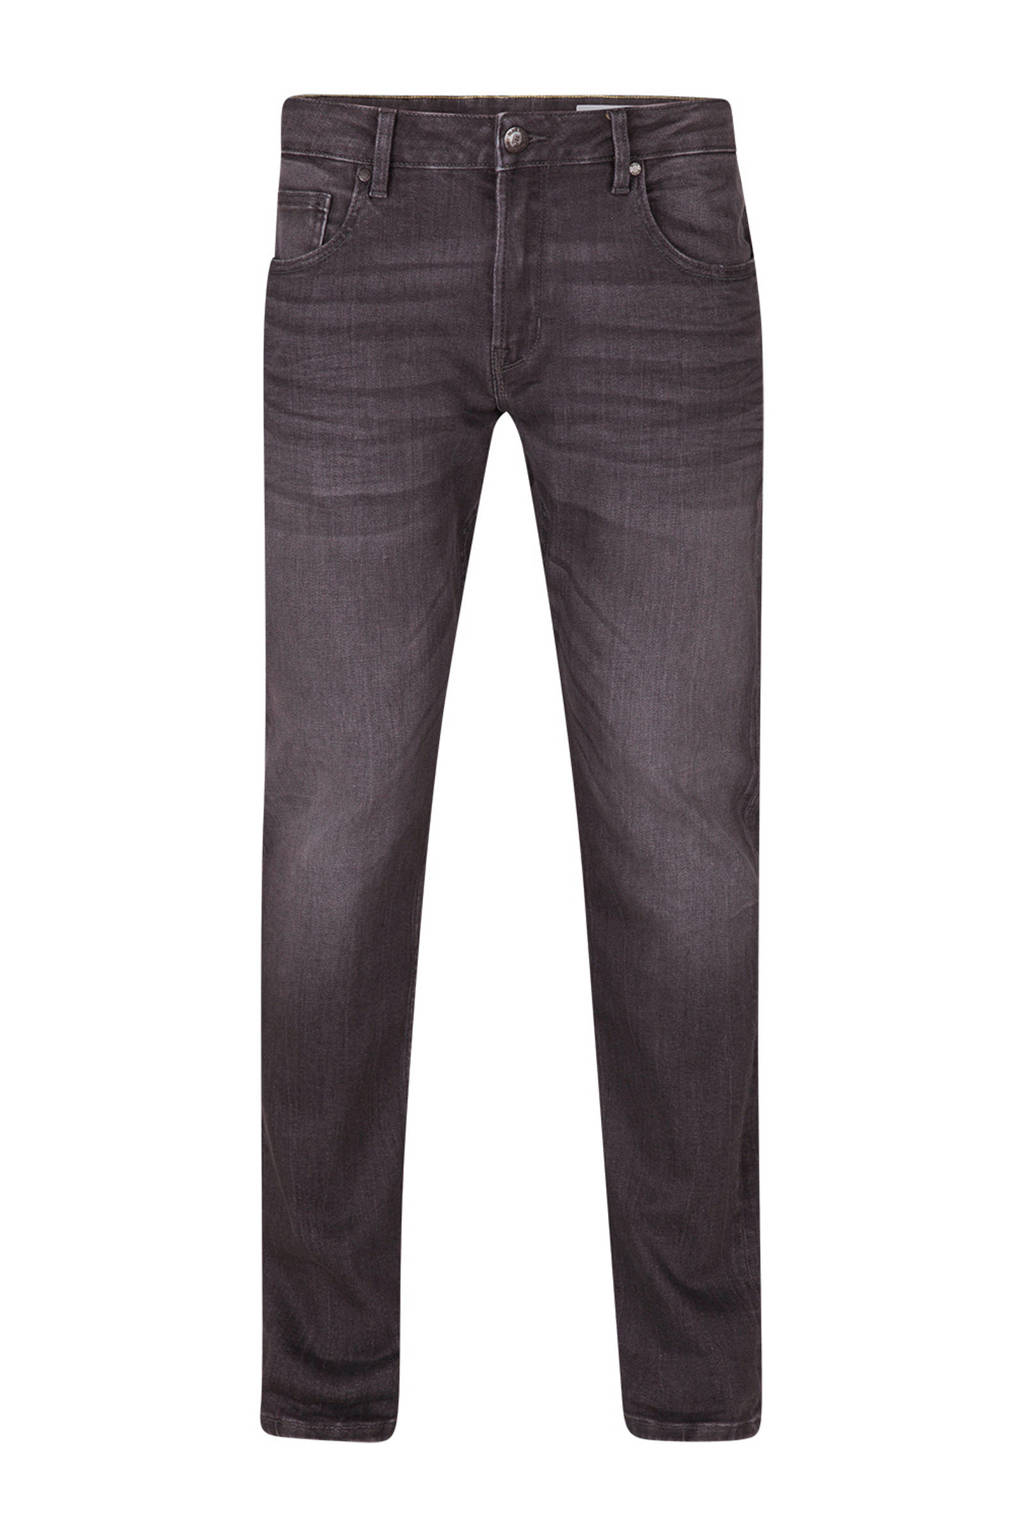 WE Fashion Blue Ridge regular fit jog denim, Grijs